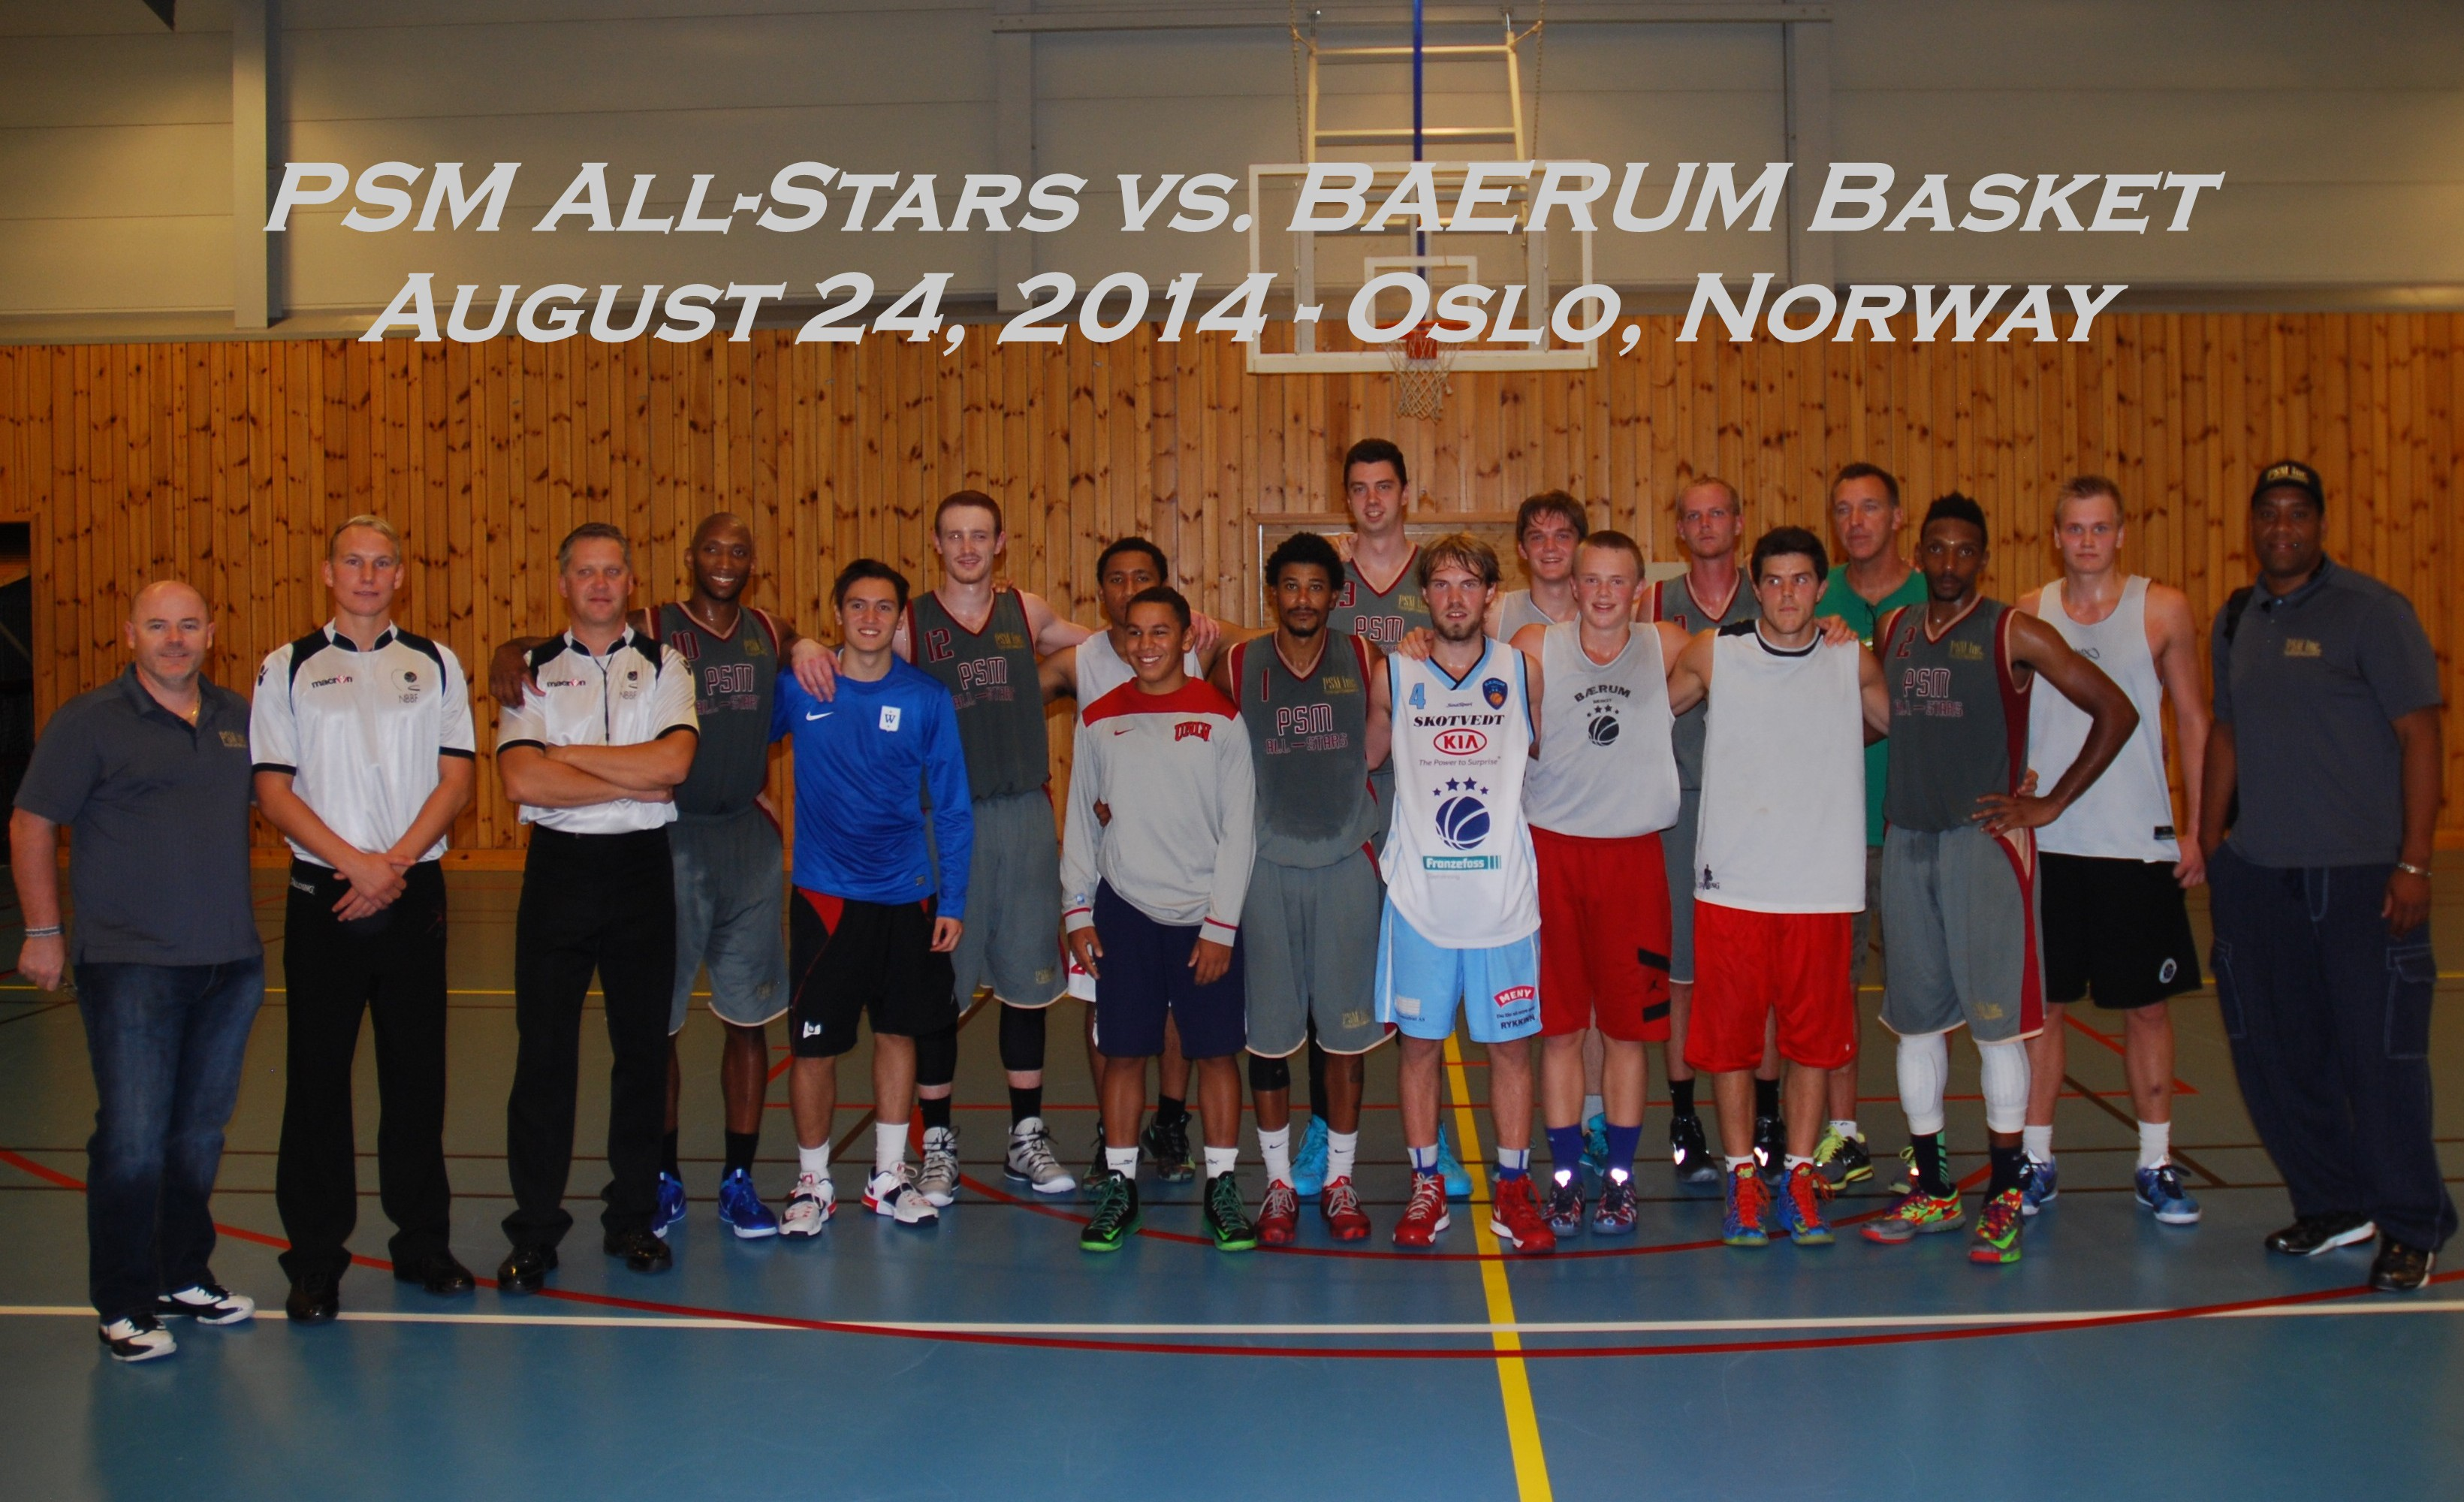 PSM All-Stars vs Baerum Basket